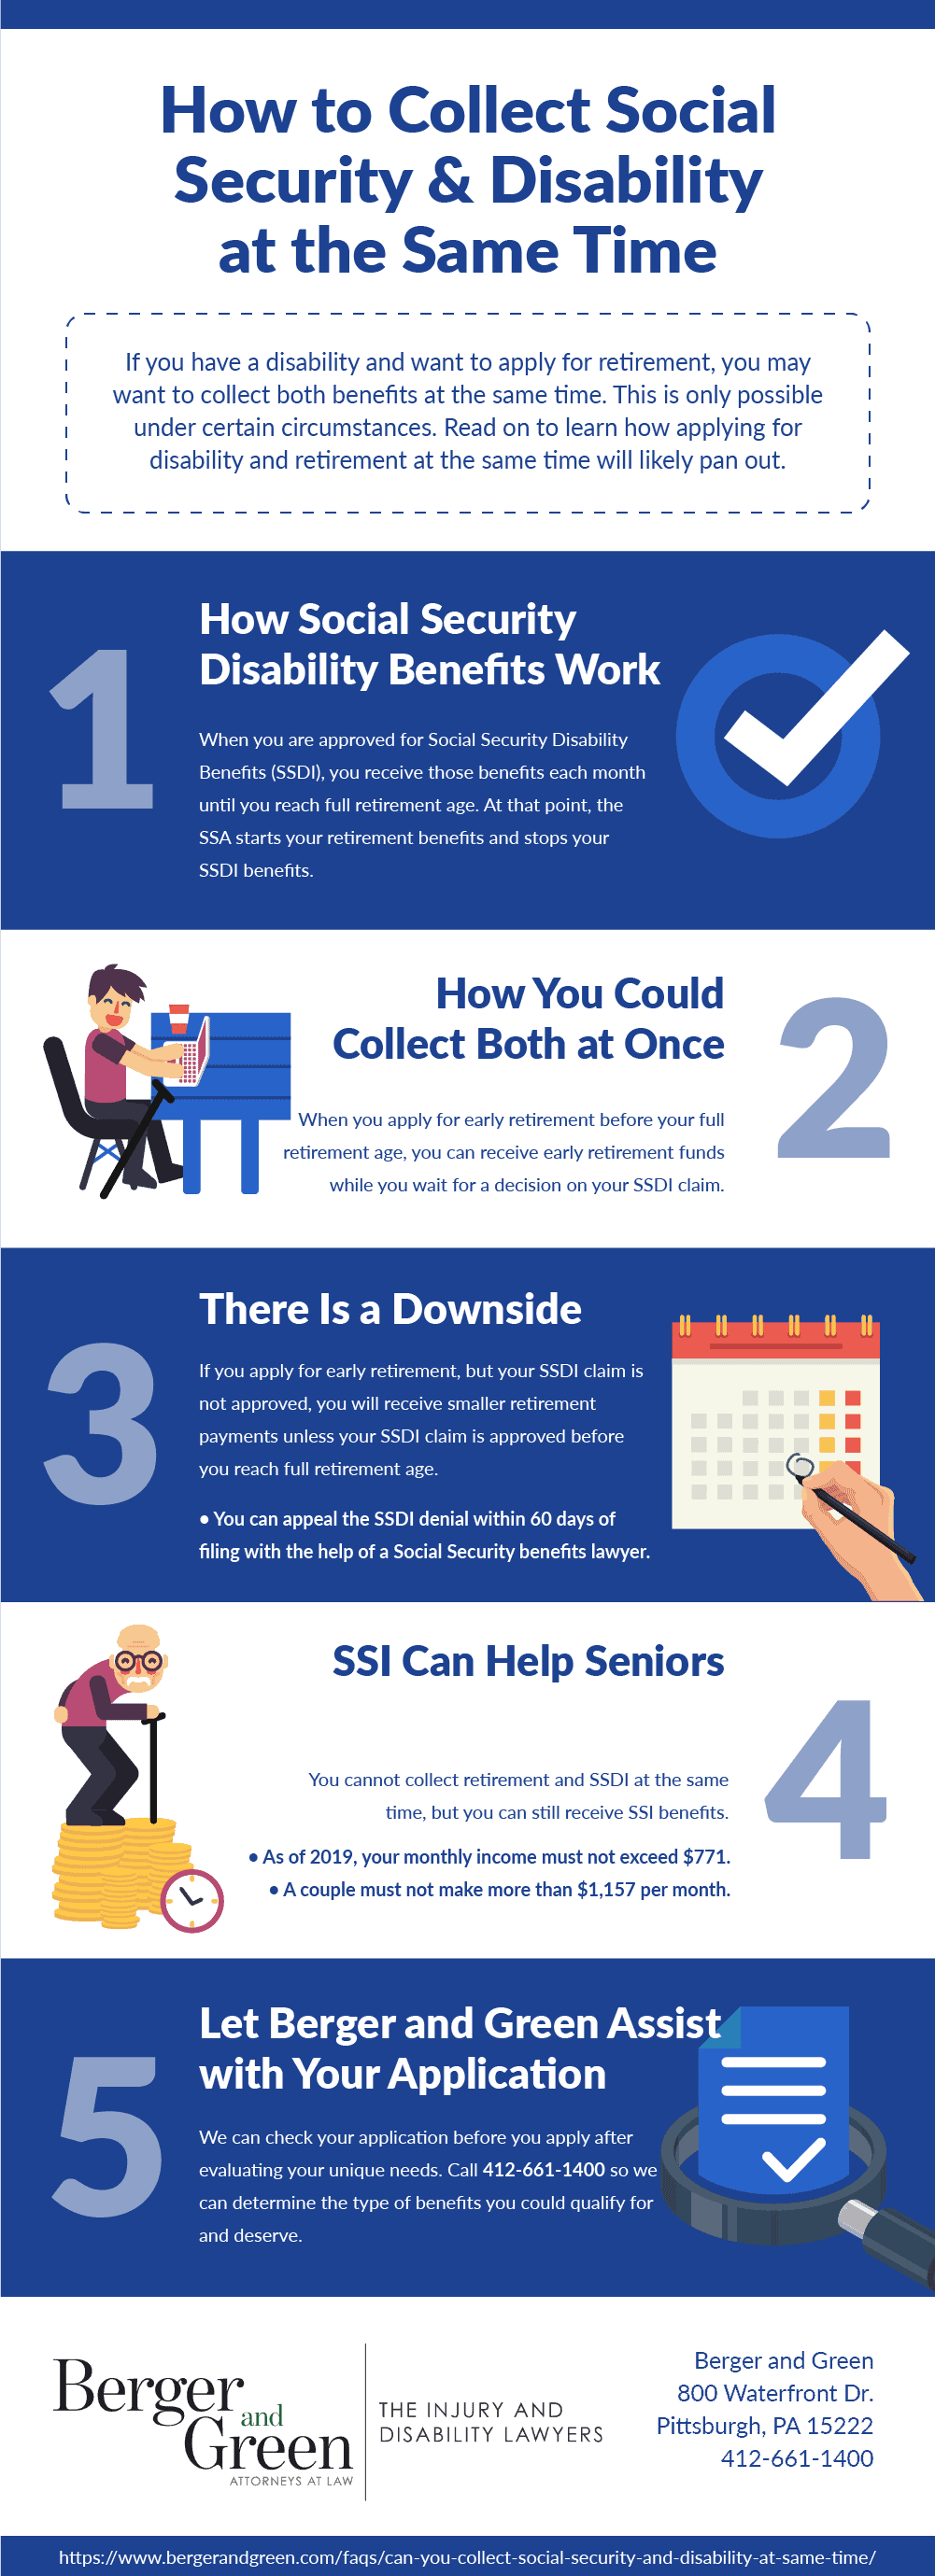 Can You Collect Social Security Retirement and Disability at the Same Time?